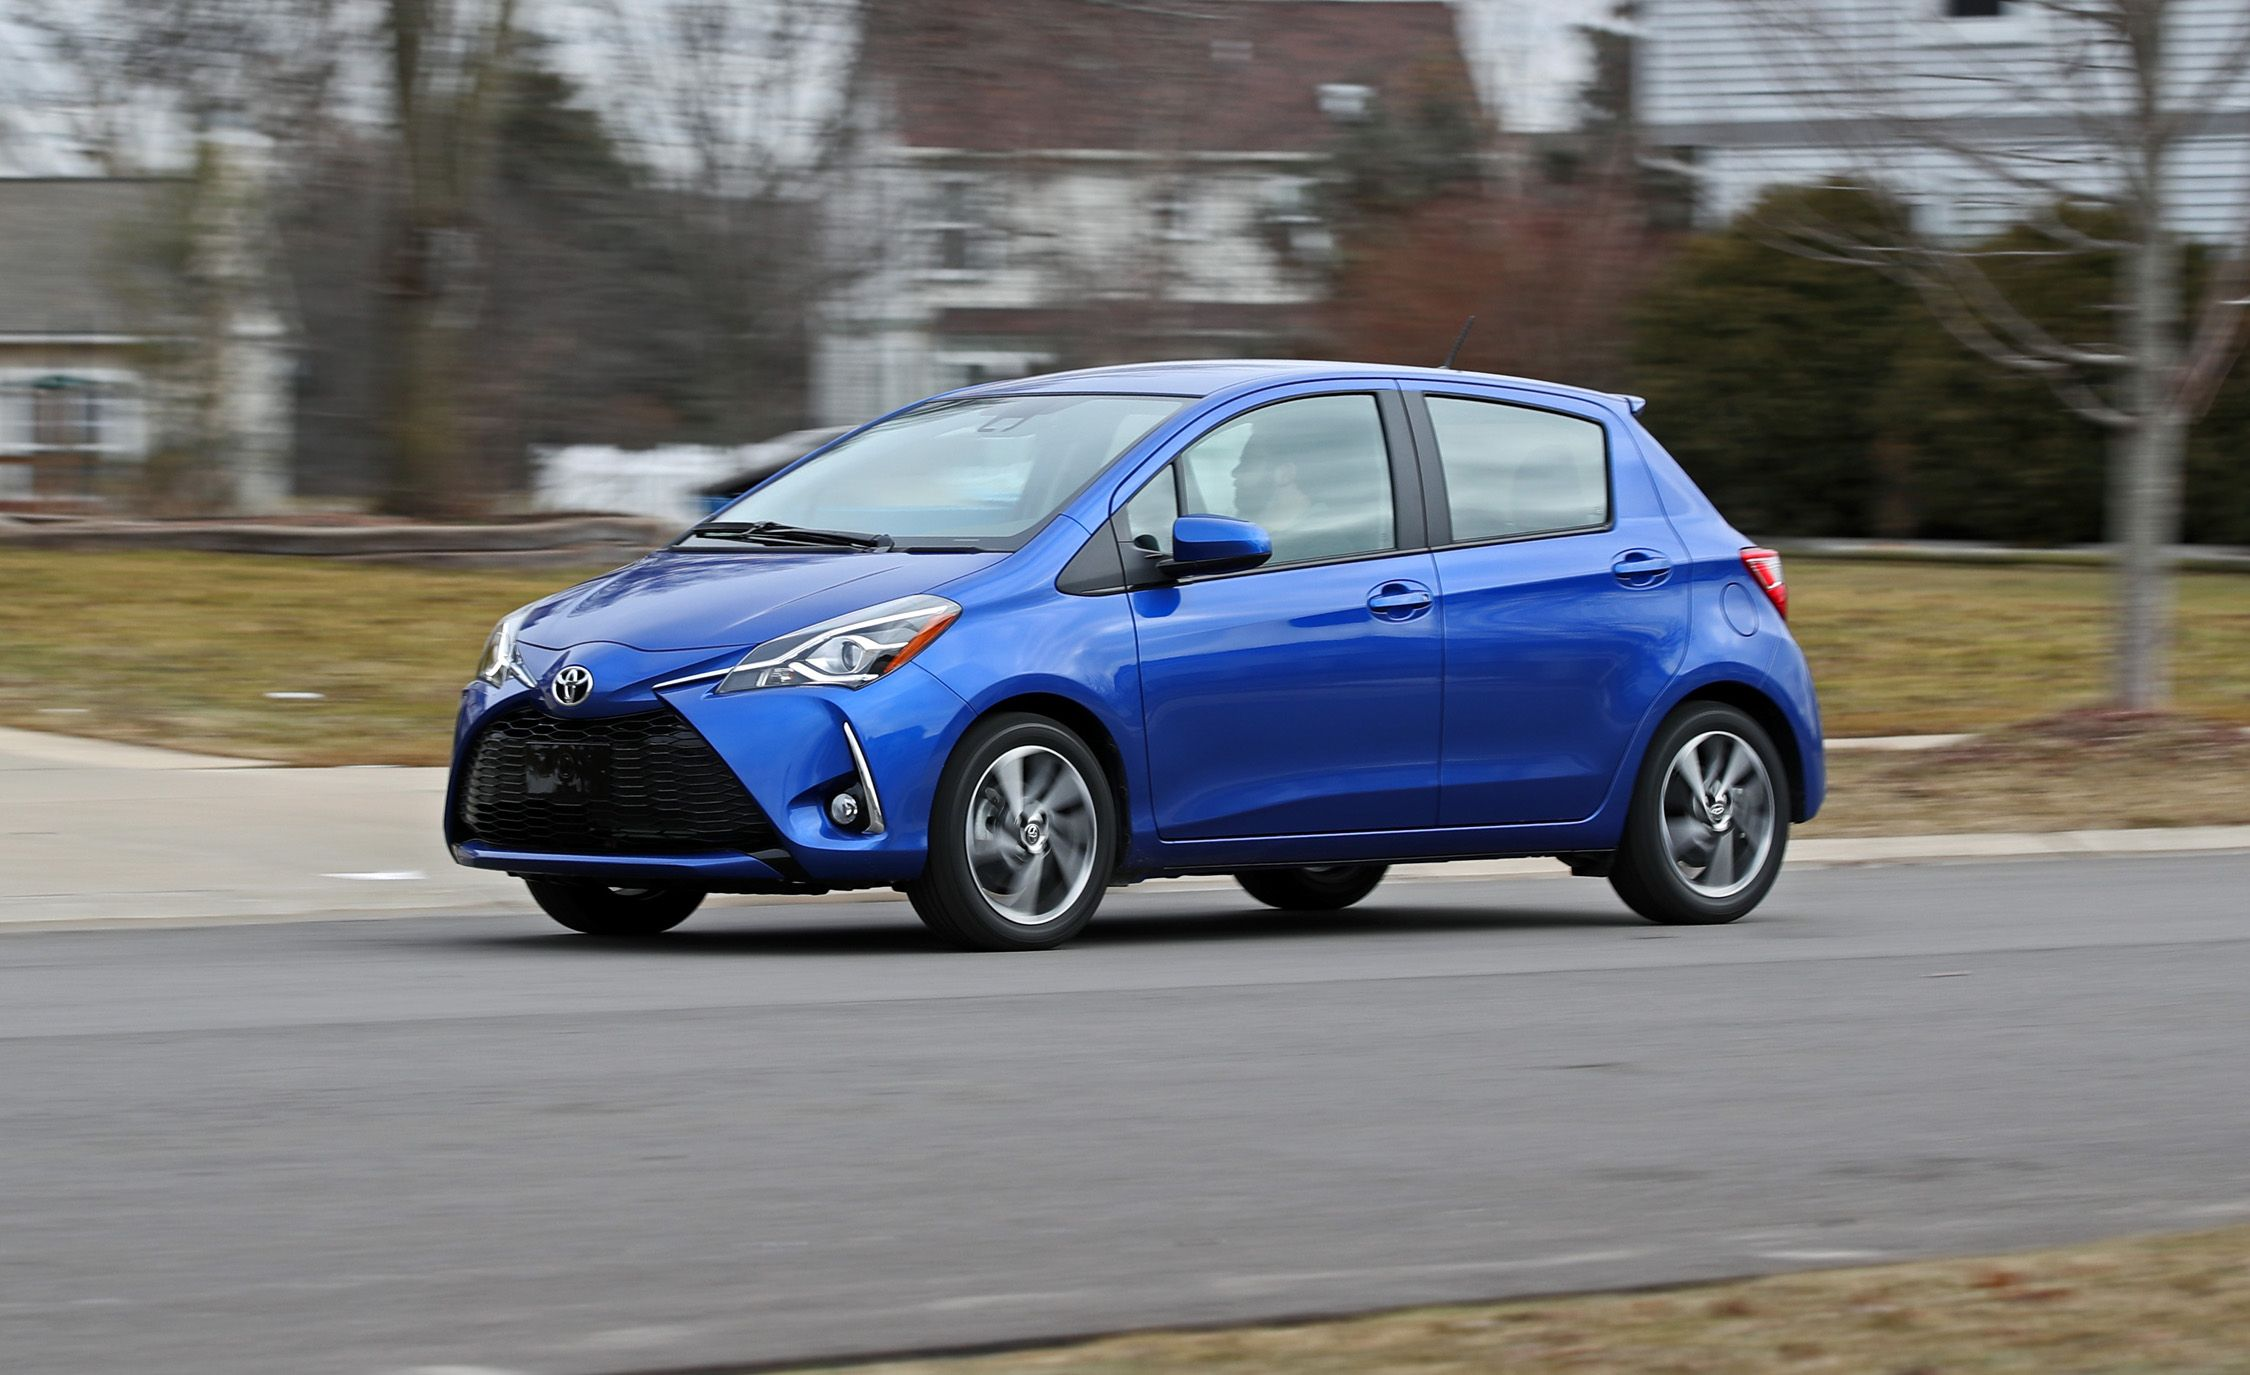 2018 Toyota Yaris | In-Depth Model Review | Car and Driver